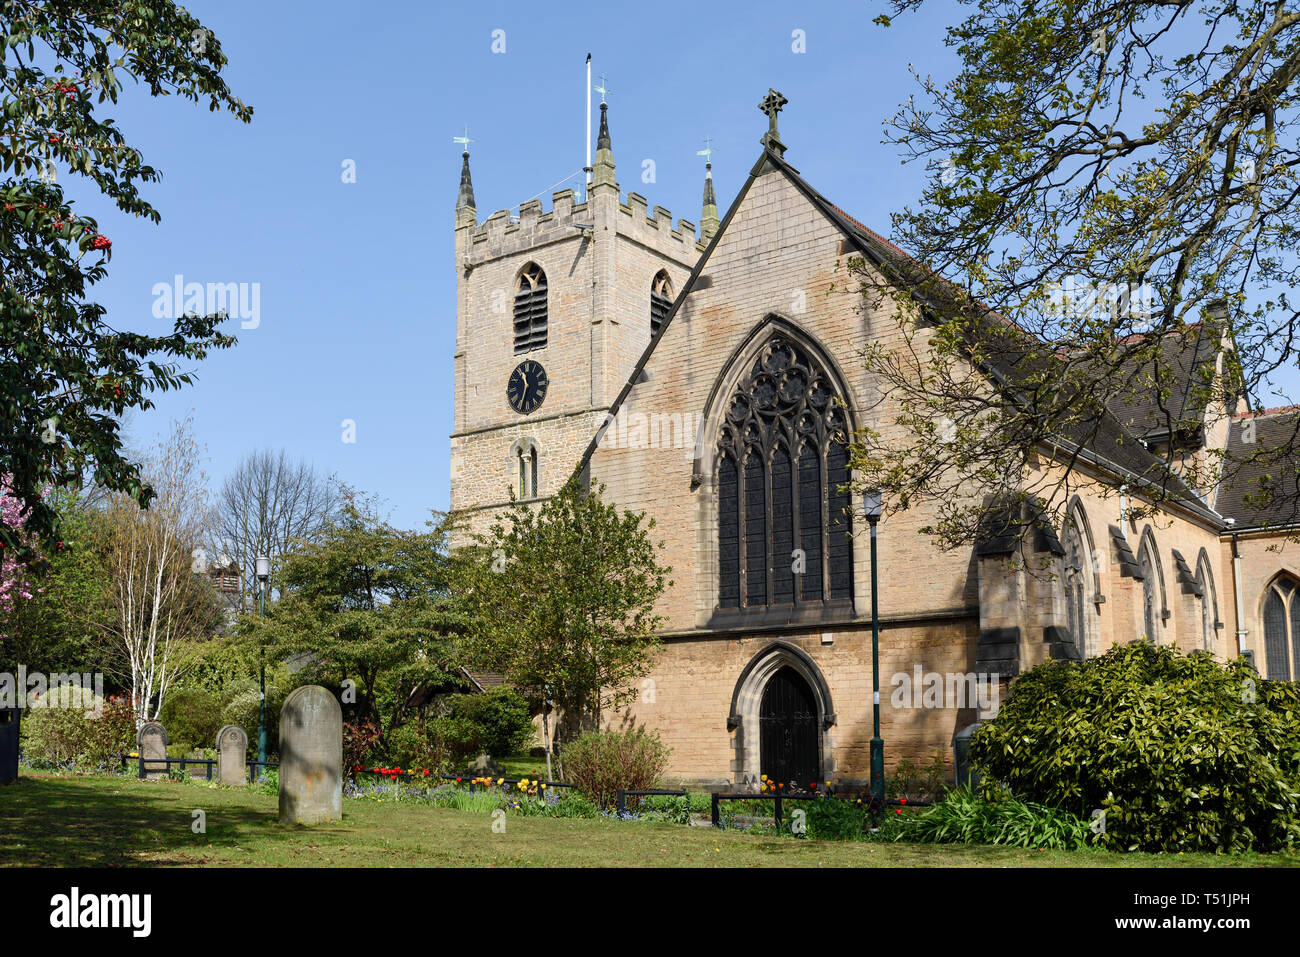 Hucknall Market and Church in Nottinghamshire,UK. Stock Photo